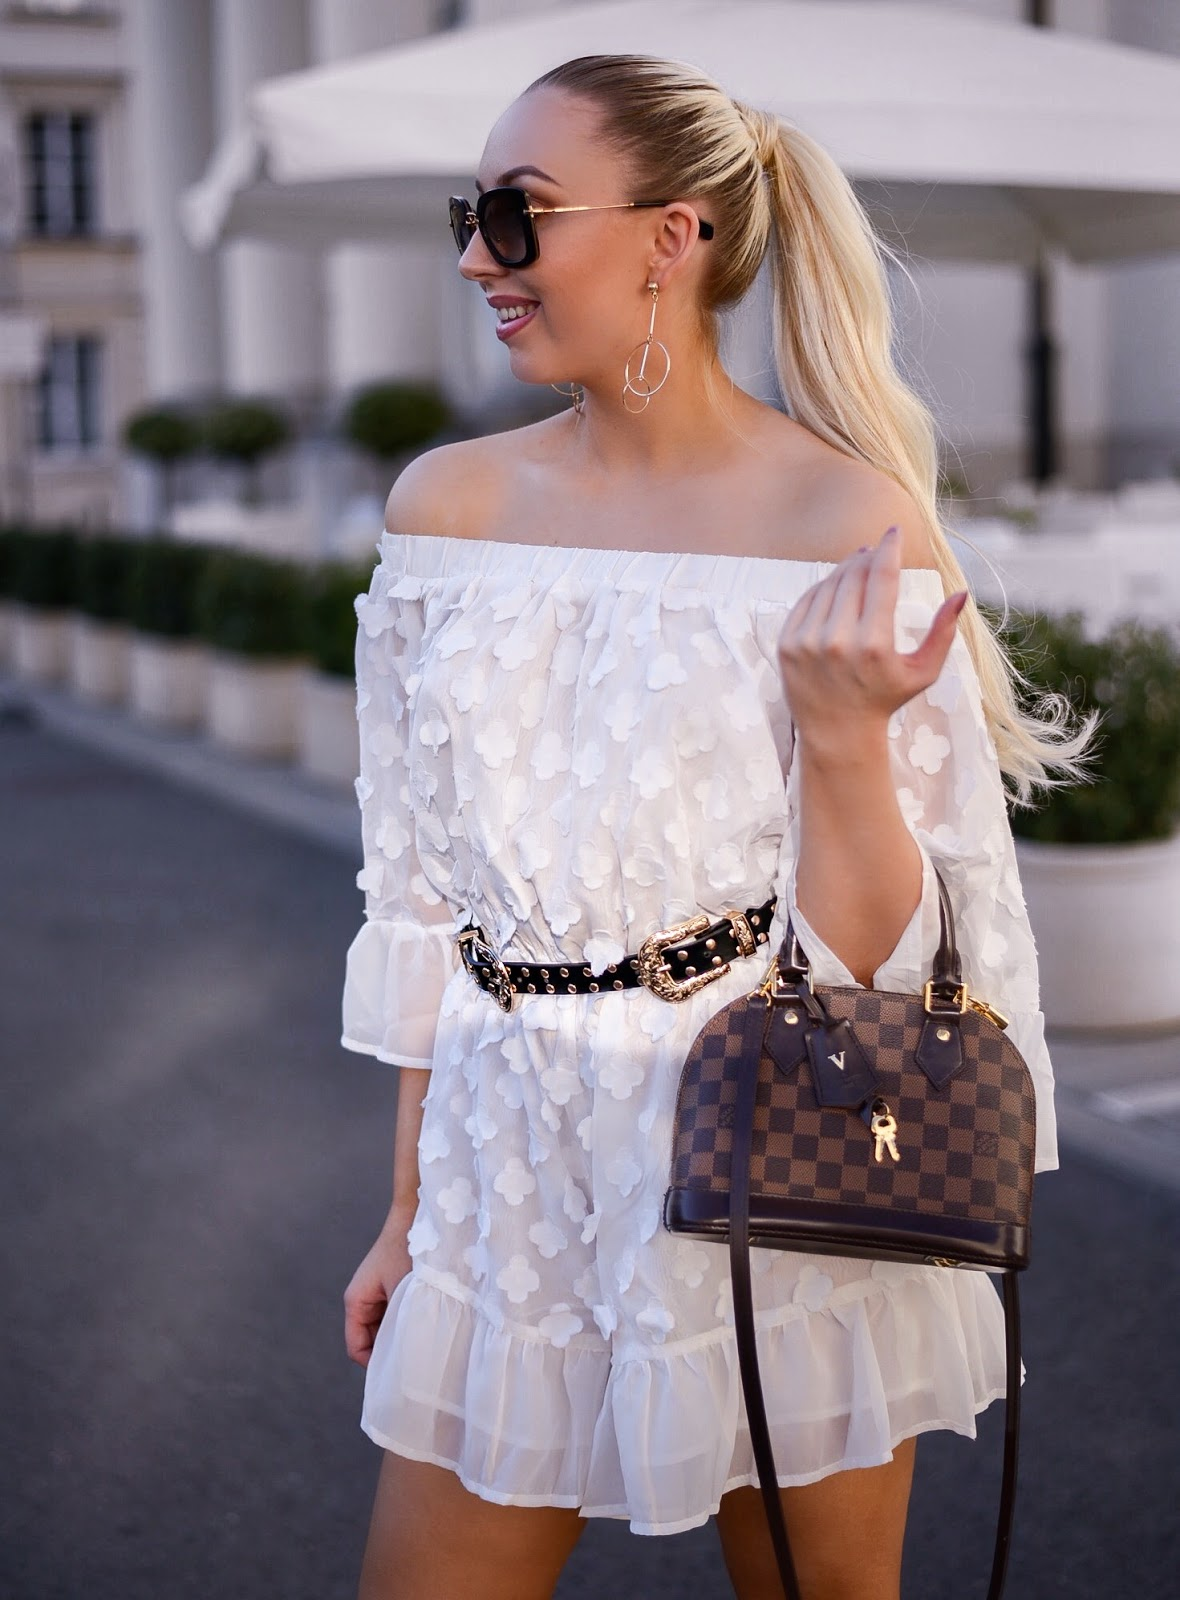 sheinside review_white playsuit_louis vuitton alma bb